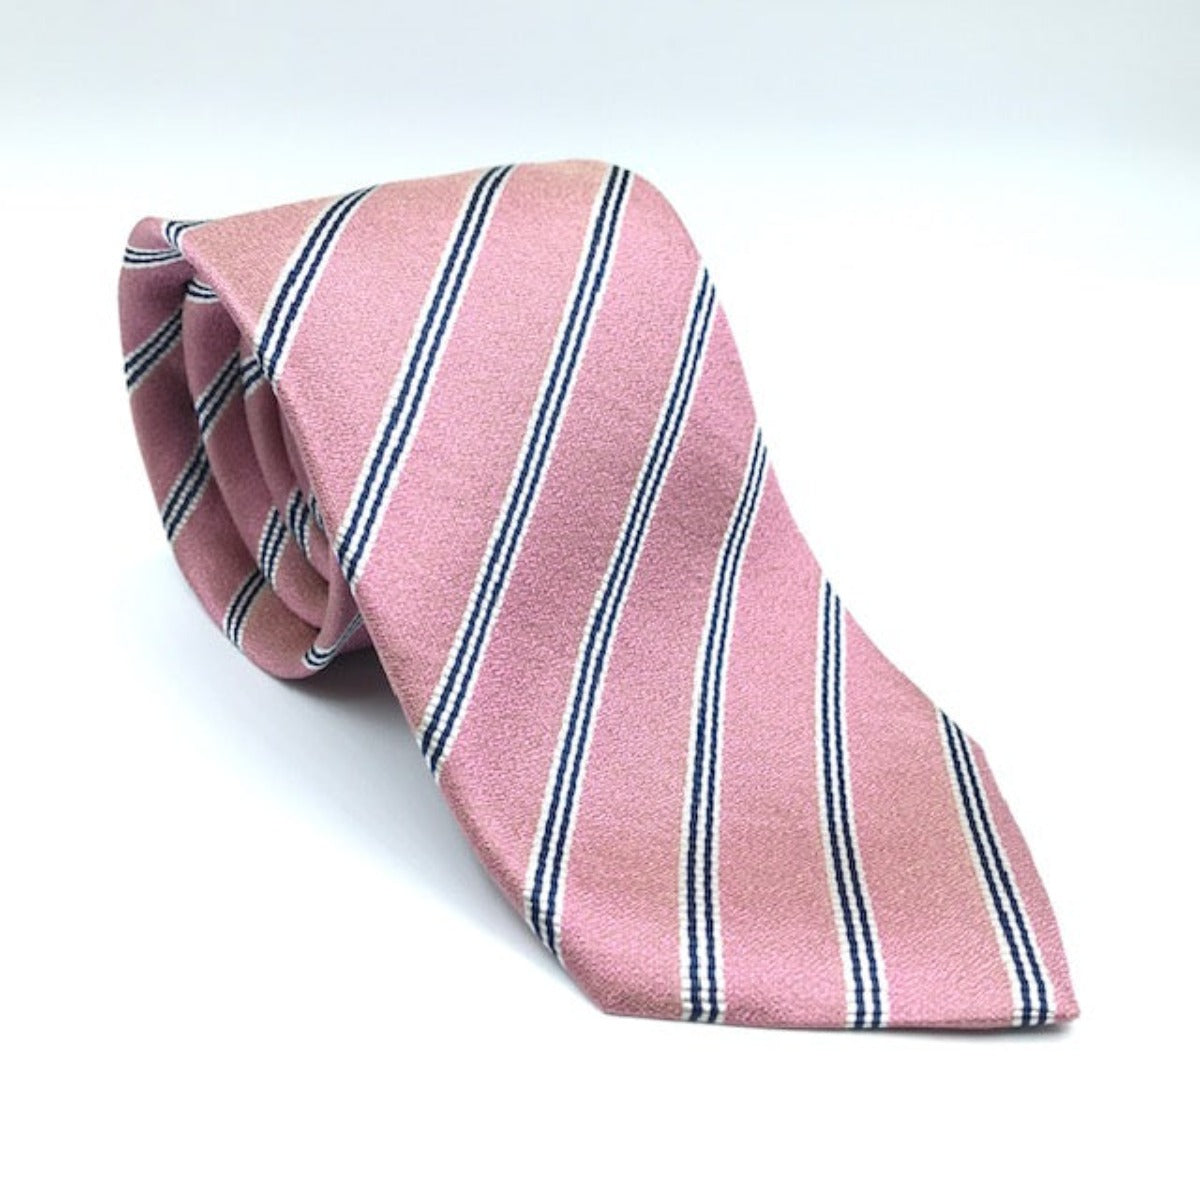 A luxury silk tie designed by and handmade exclusively for Regent. A subtle pink is electrified by smart back thin twin lines for a classic yet unusual finish.